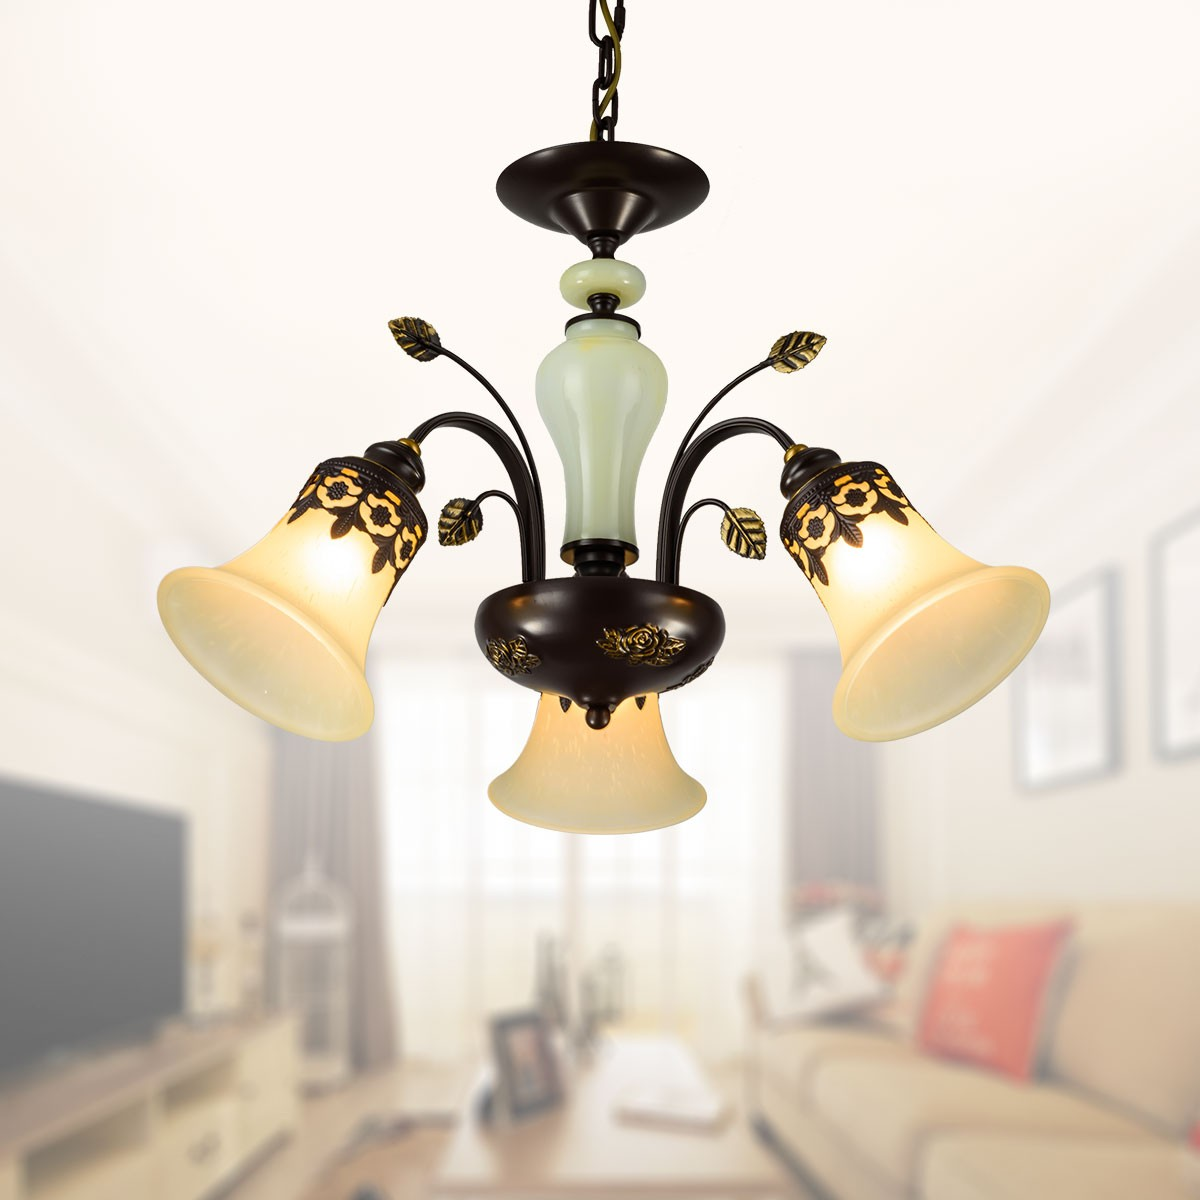 3 light black wrought iron chandelier with glass shades dk 1029 3 3 light black wrought iron chandelier with glass shades dk 1029 3 aloadofball Images